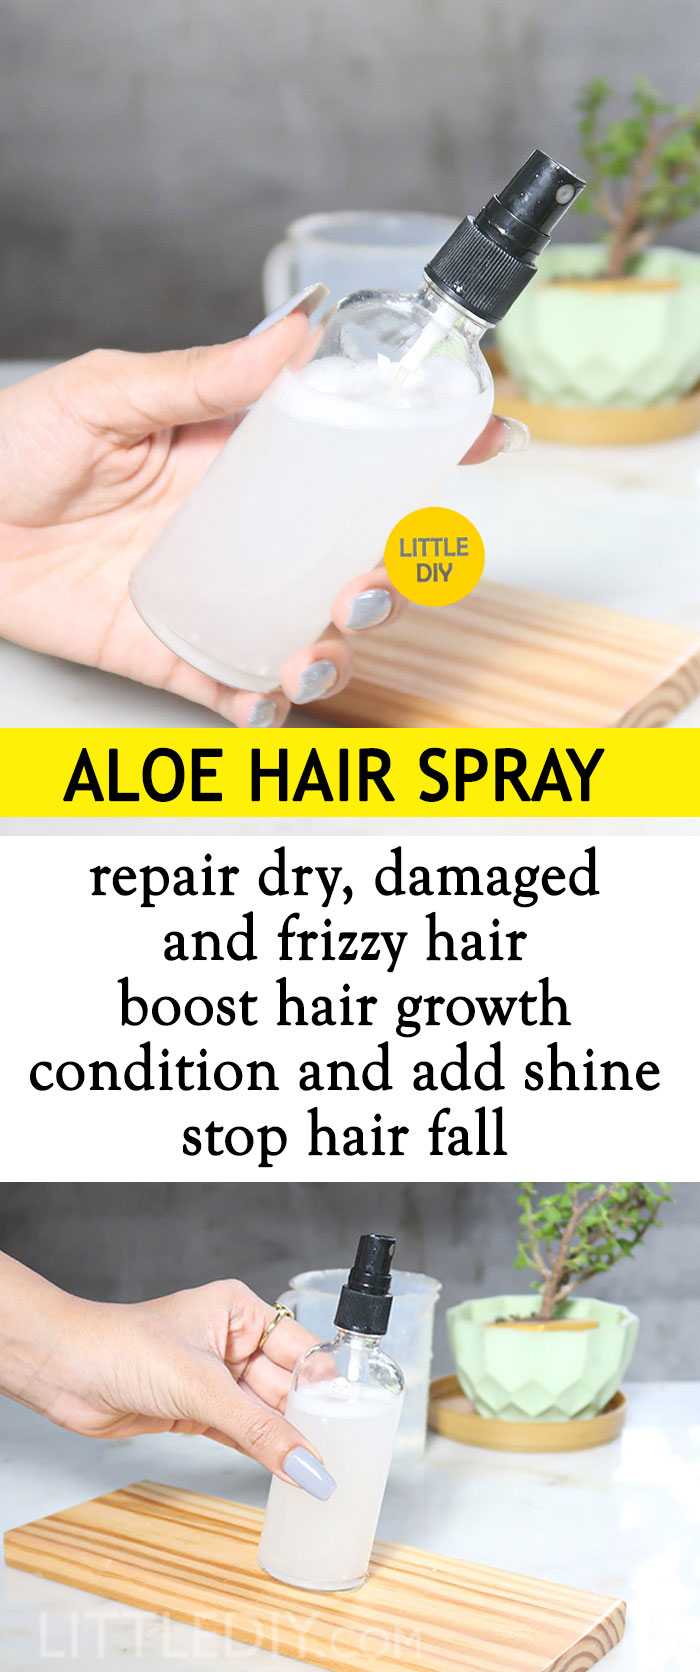 Photo of ALOE VERA TO REPAIR DRY DAMAGED HAIR